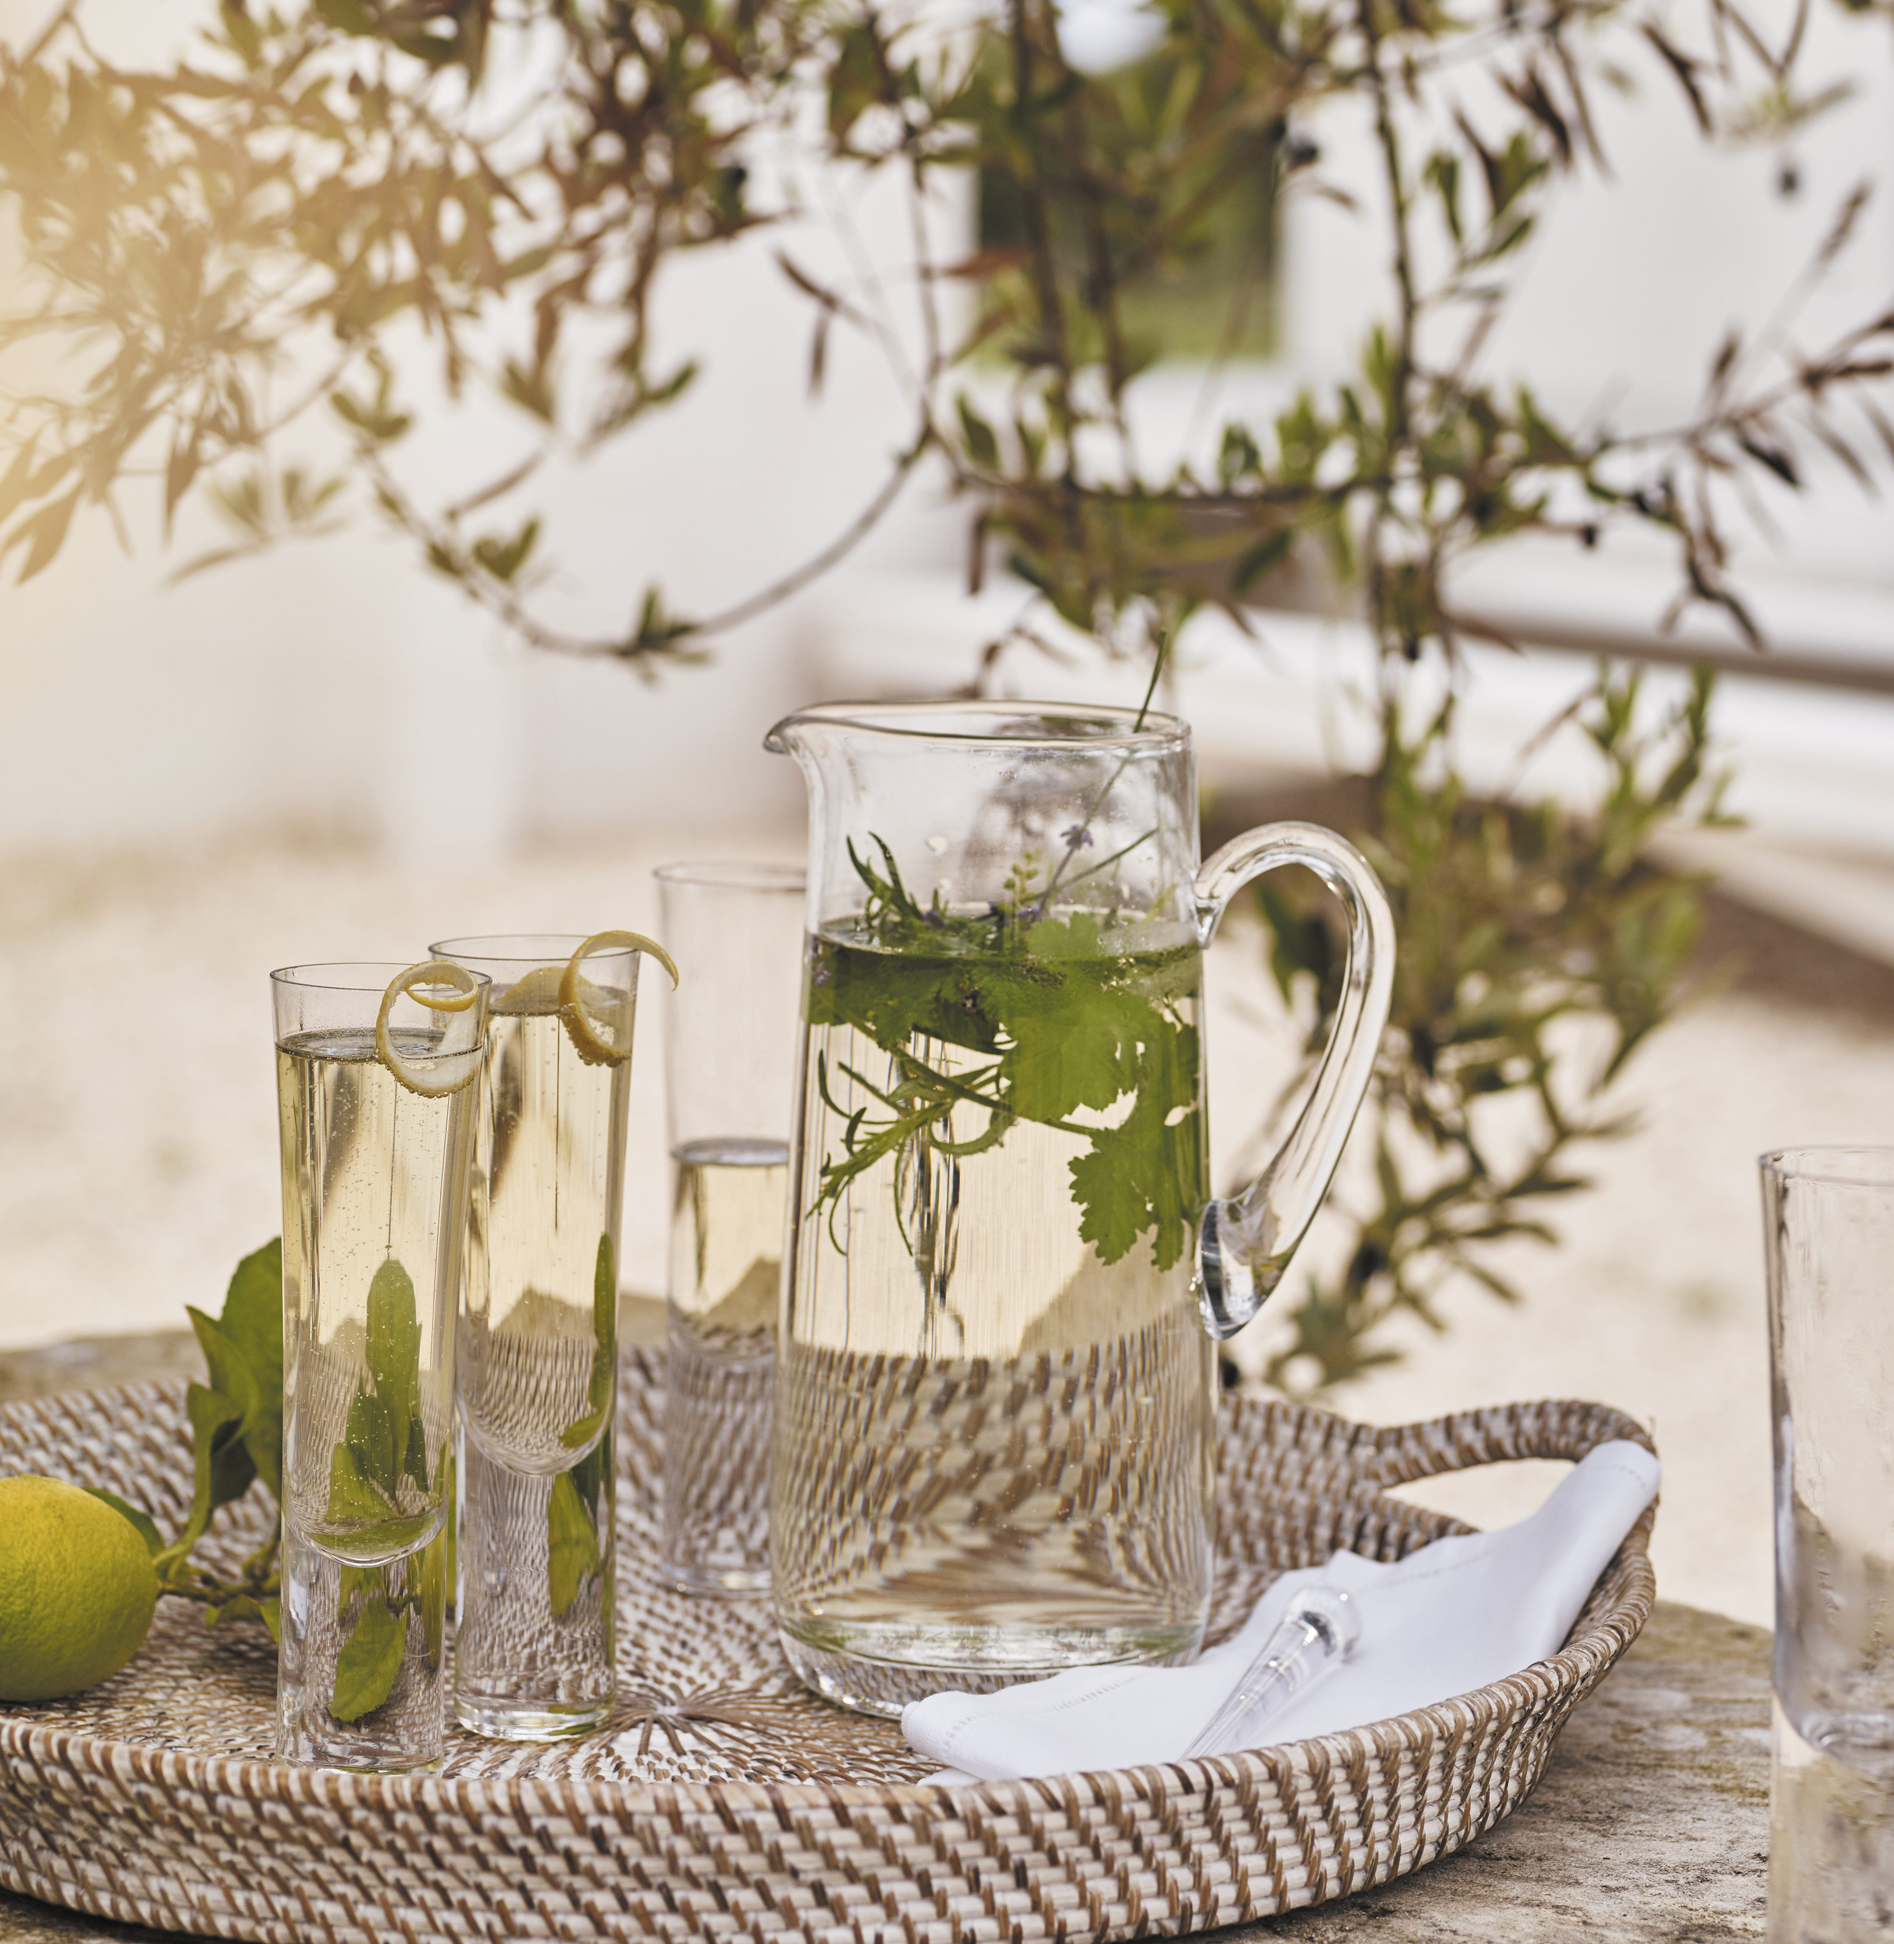 Cocktail Jug with stirrer and selection of glasses, The White Company